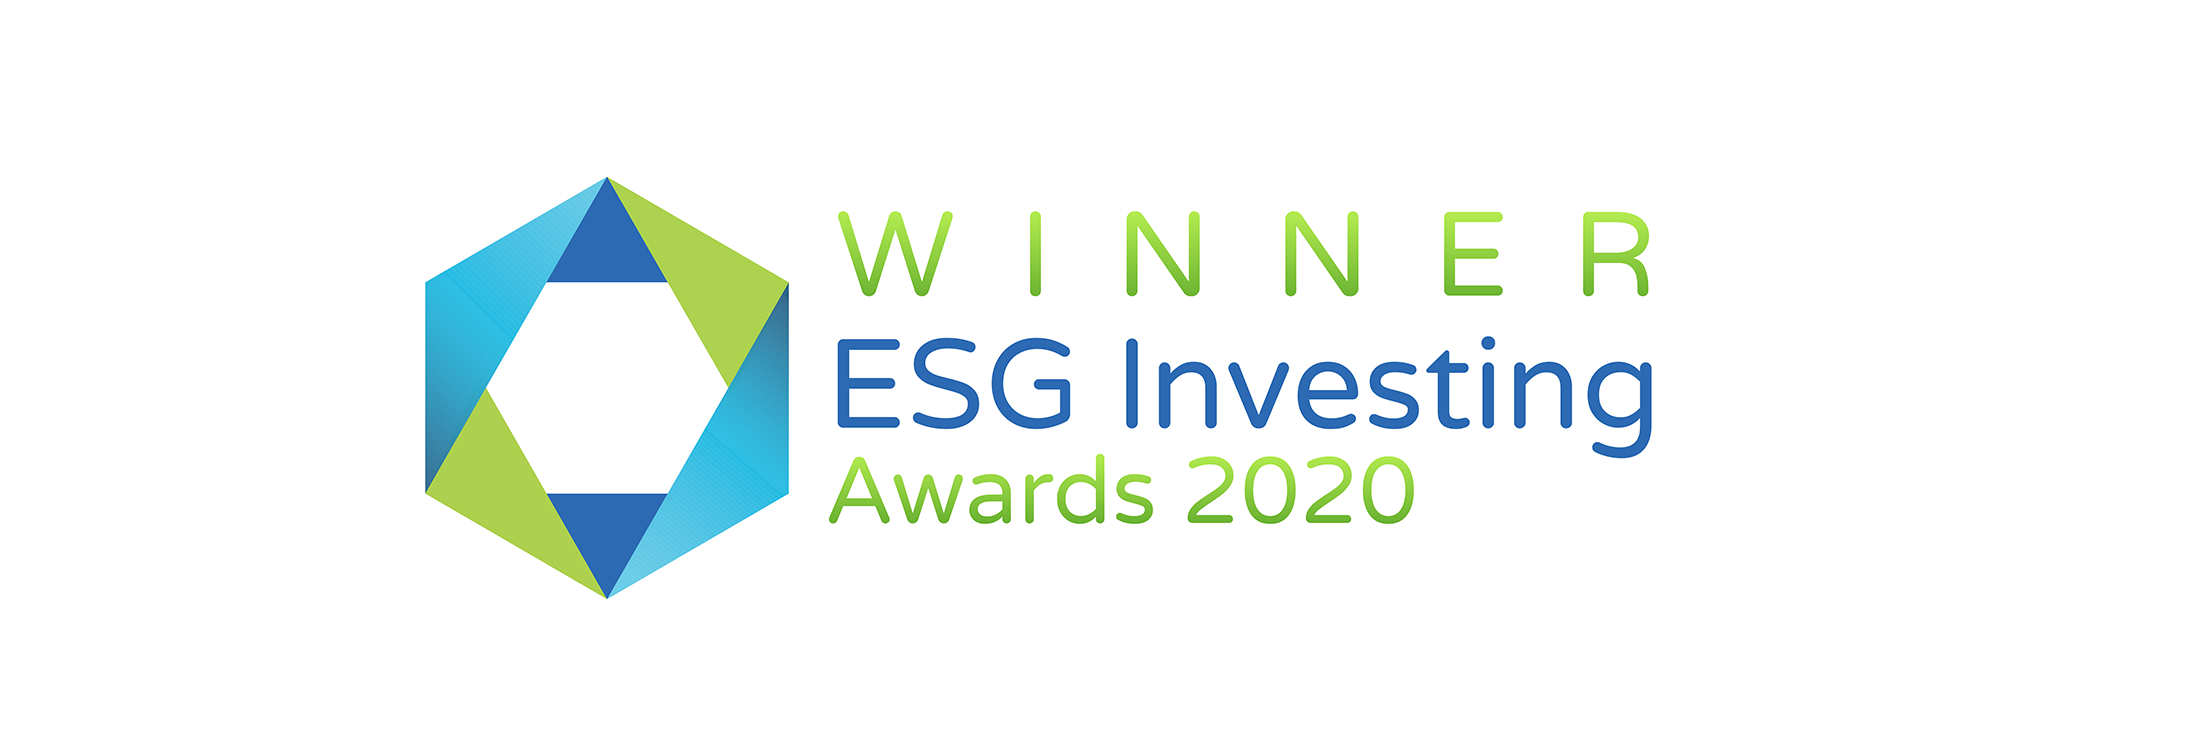 AIM Wins at the ESG Investing Awards 2020